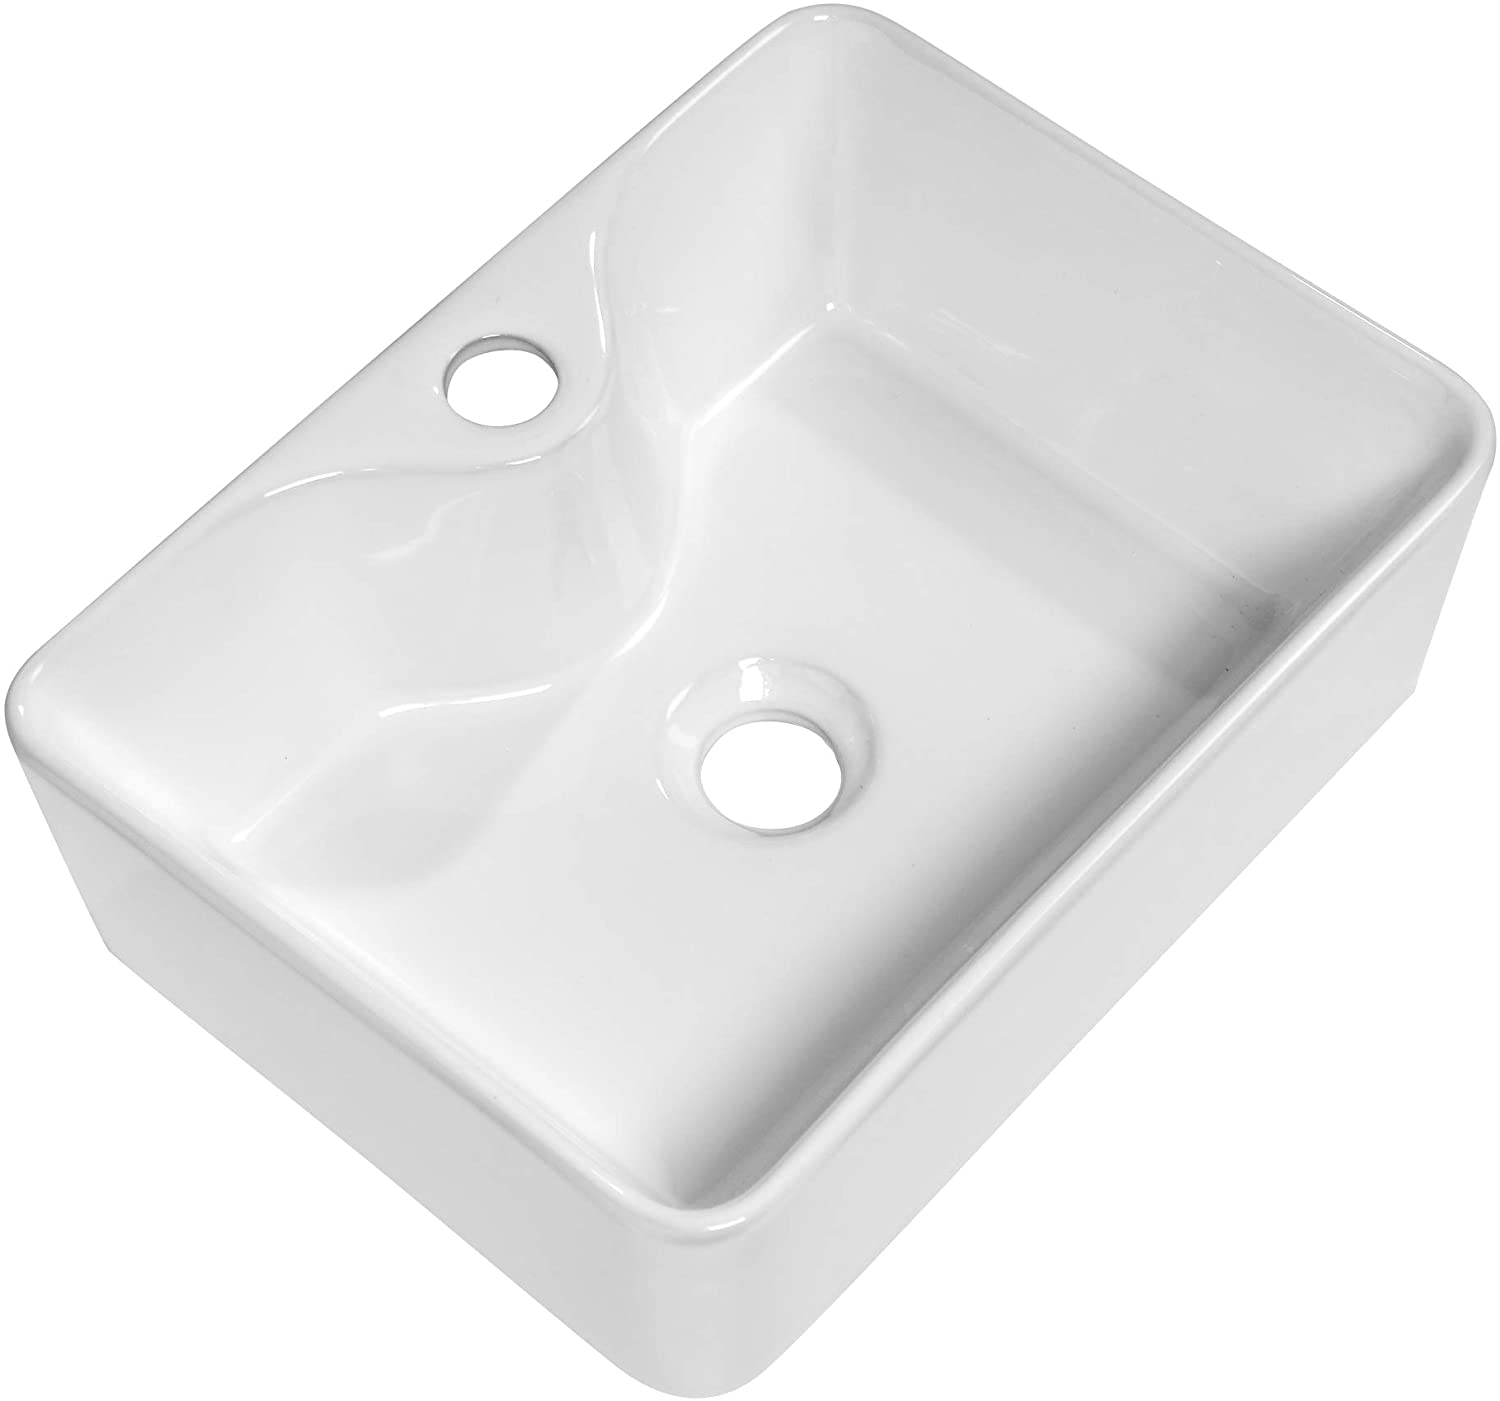 Vessel Sink Rectangular - Kichae 16